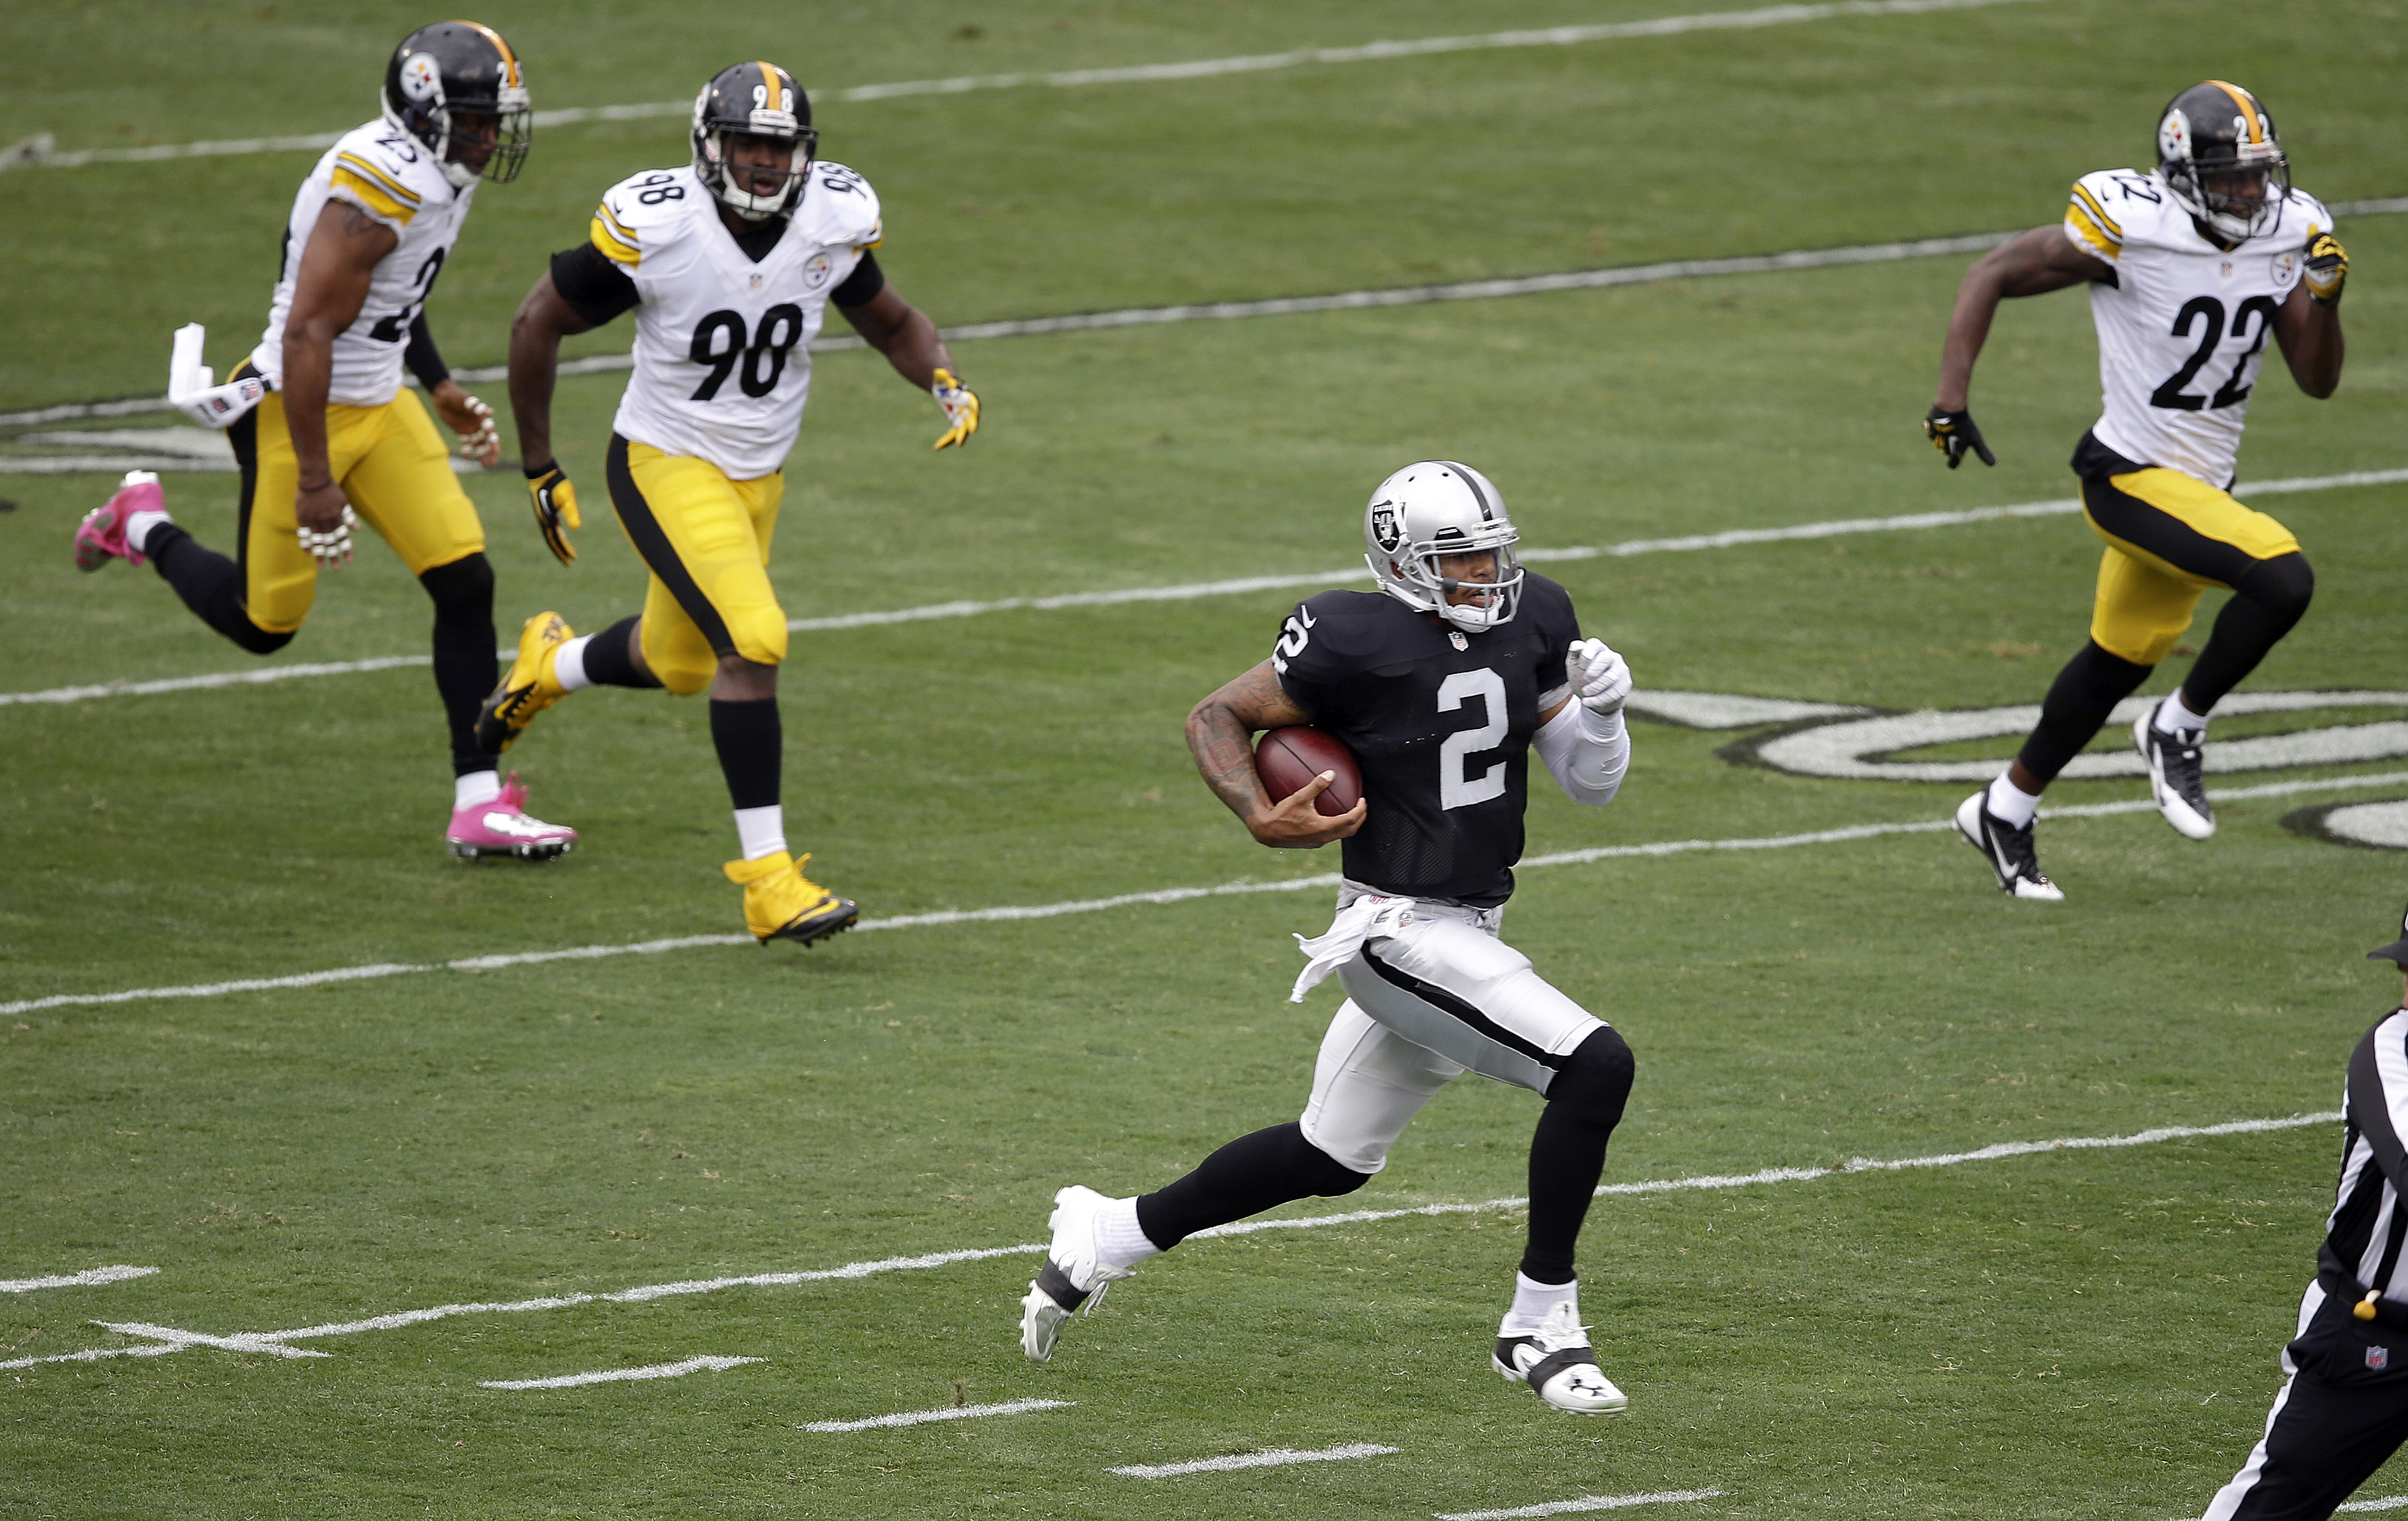 Oakland's Terrelle Pryor pulls away from Pittsburgh Steelers linebacker Vince Williams, left, and cornerback William Gay on his way to a 93-yard touchdown, the longest TD run ever by an NFL quarterback.